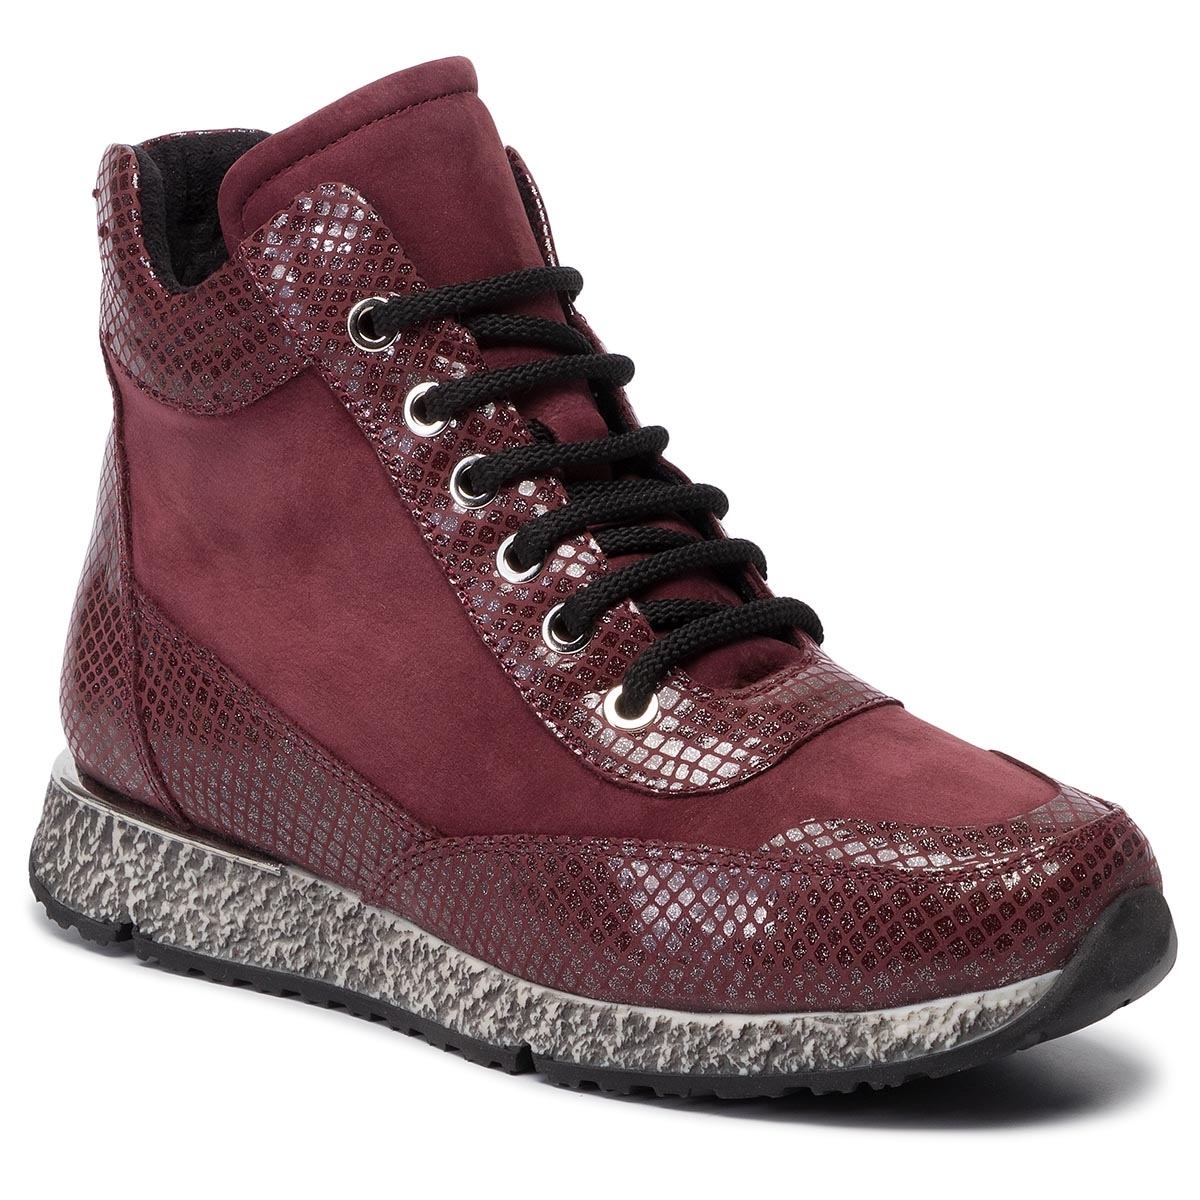 Sneakers PIAZZA - 991365 Bordeaux 41